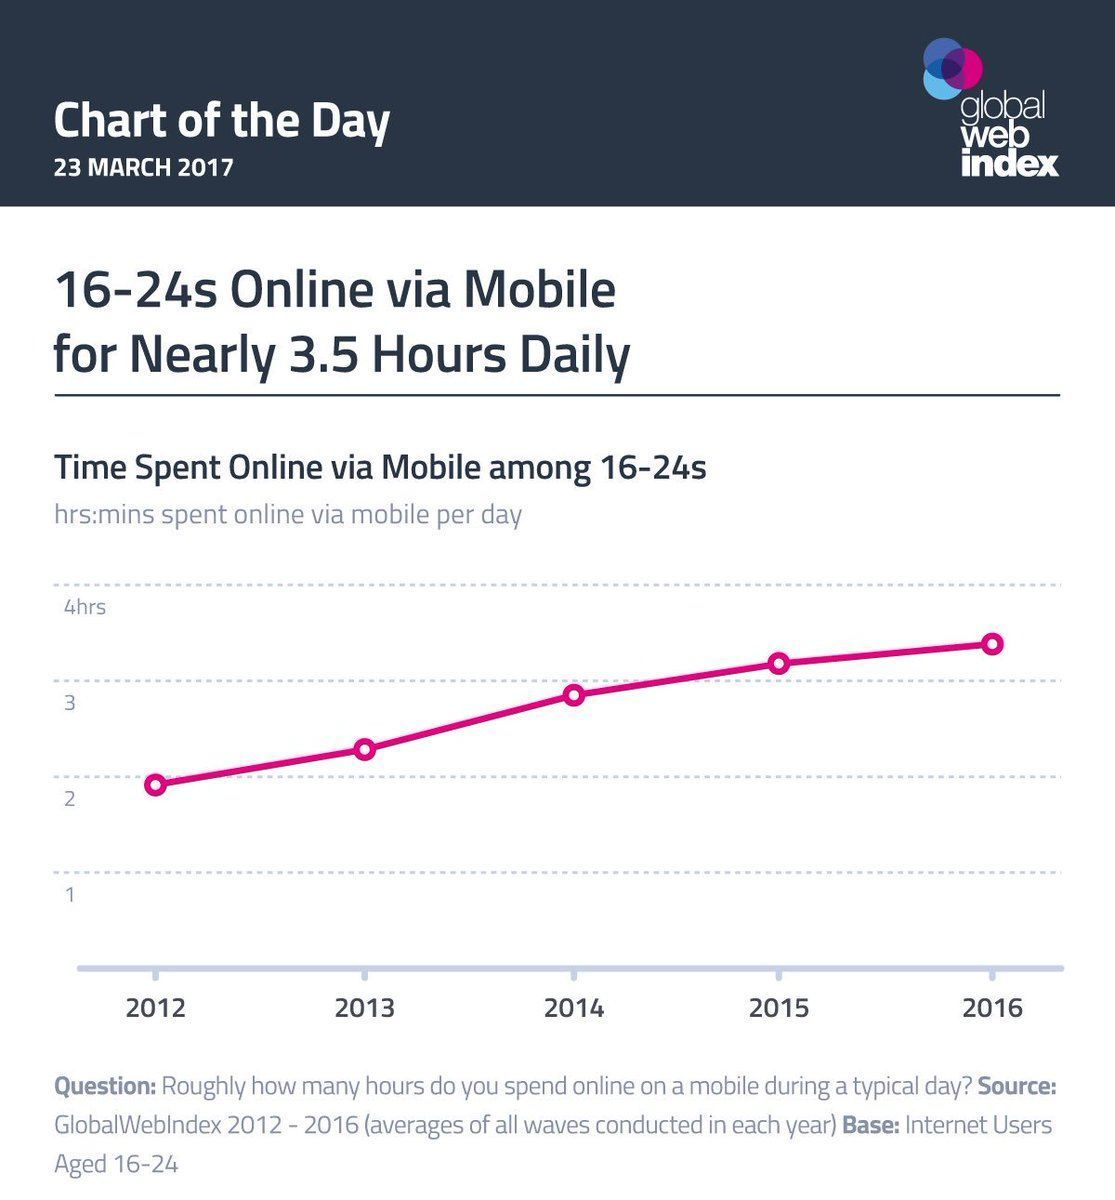 88% of #genz use #socialmedia,86% #messaging apps; demographic now #online via #mobile 3.5 hours a day. #cdo #mobilefirst<br>http://pic.twitter.com/lS3X2ObCRP